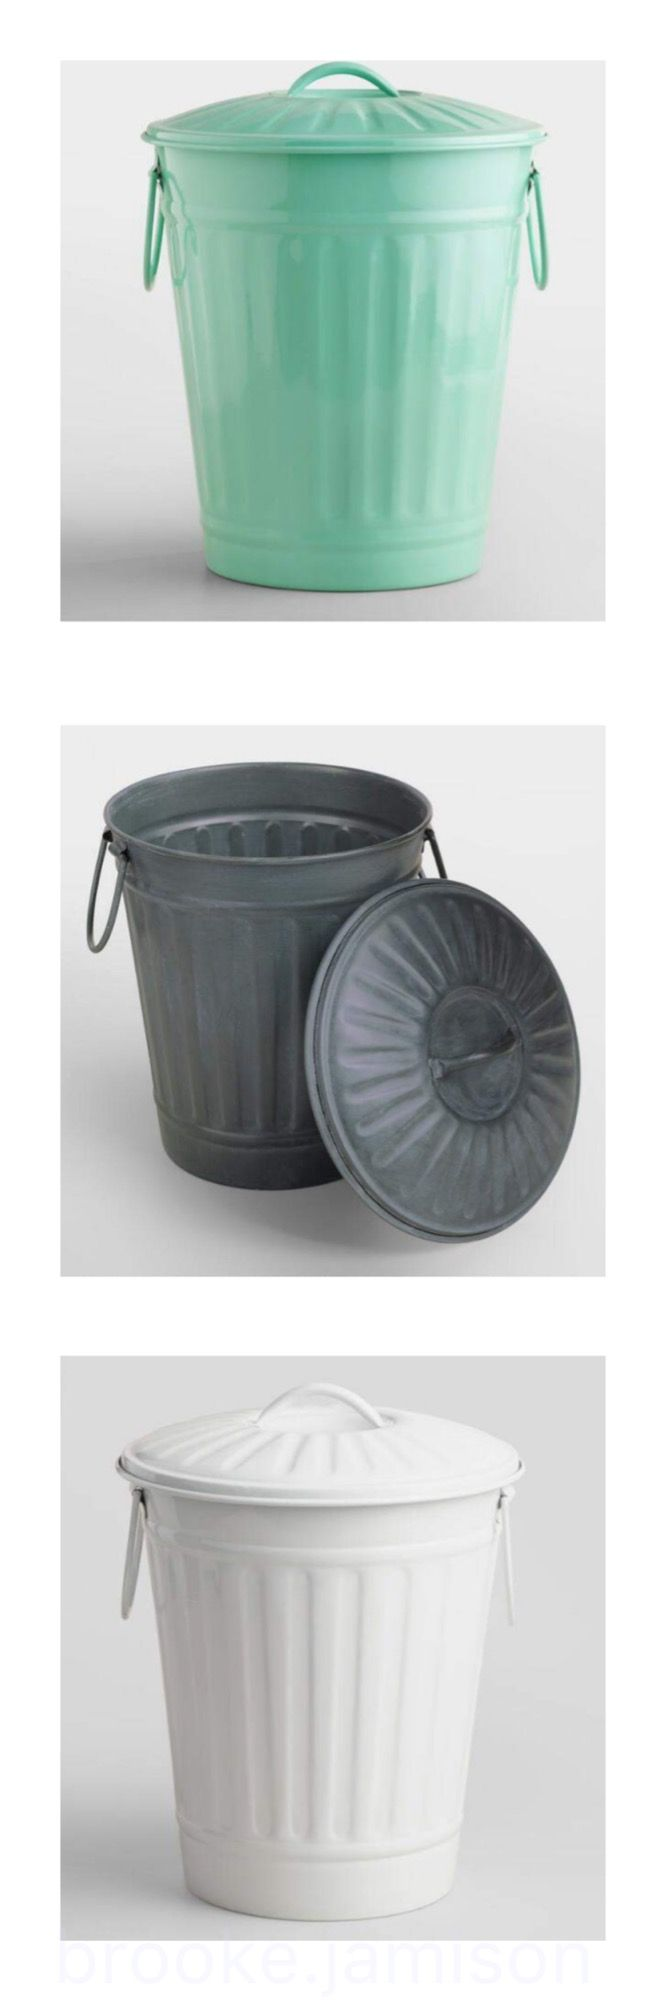 Retro, rustic and farmhouse feel. Small galvanized trash can has handles and a lid! #trashcan #recycle #rustic #farmhouse #retro #ad